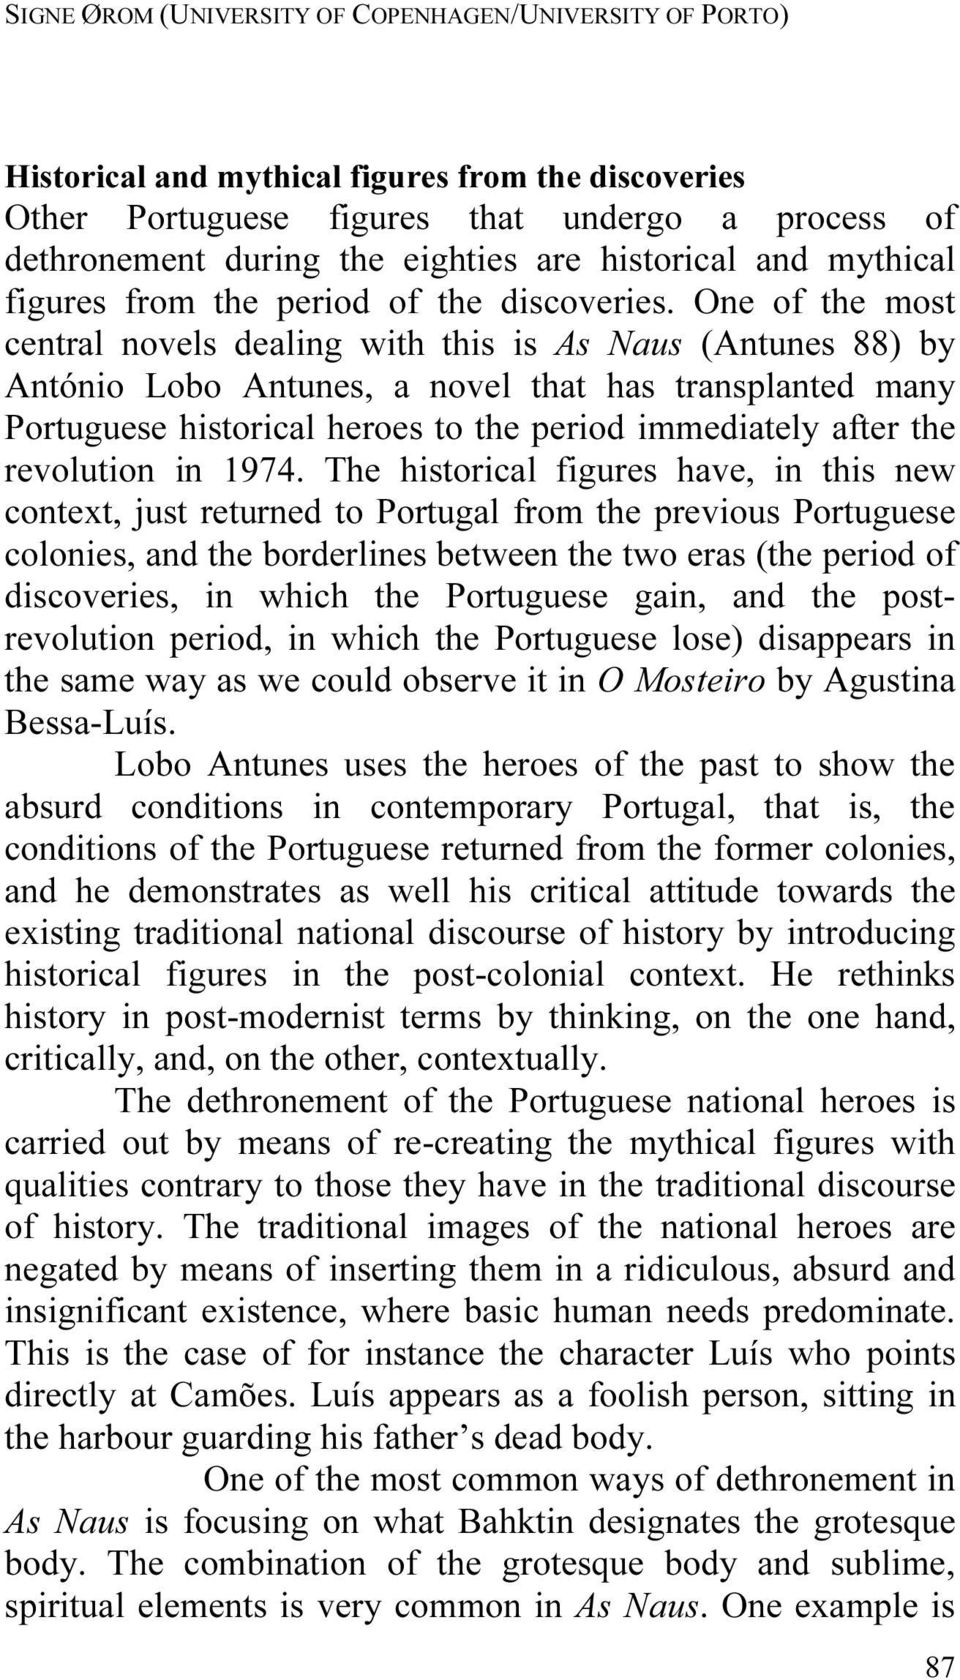 One of the most central novels dealing with this is As Naus (Antunes 88) by António Lobo Antunes, a novel that has transplanted many Portuguese historical heroes to the period immediately after the